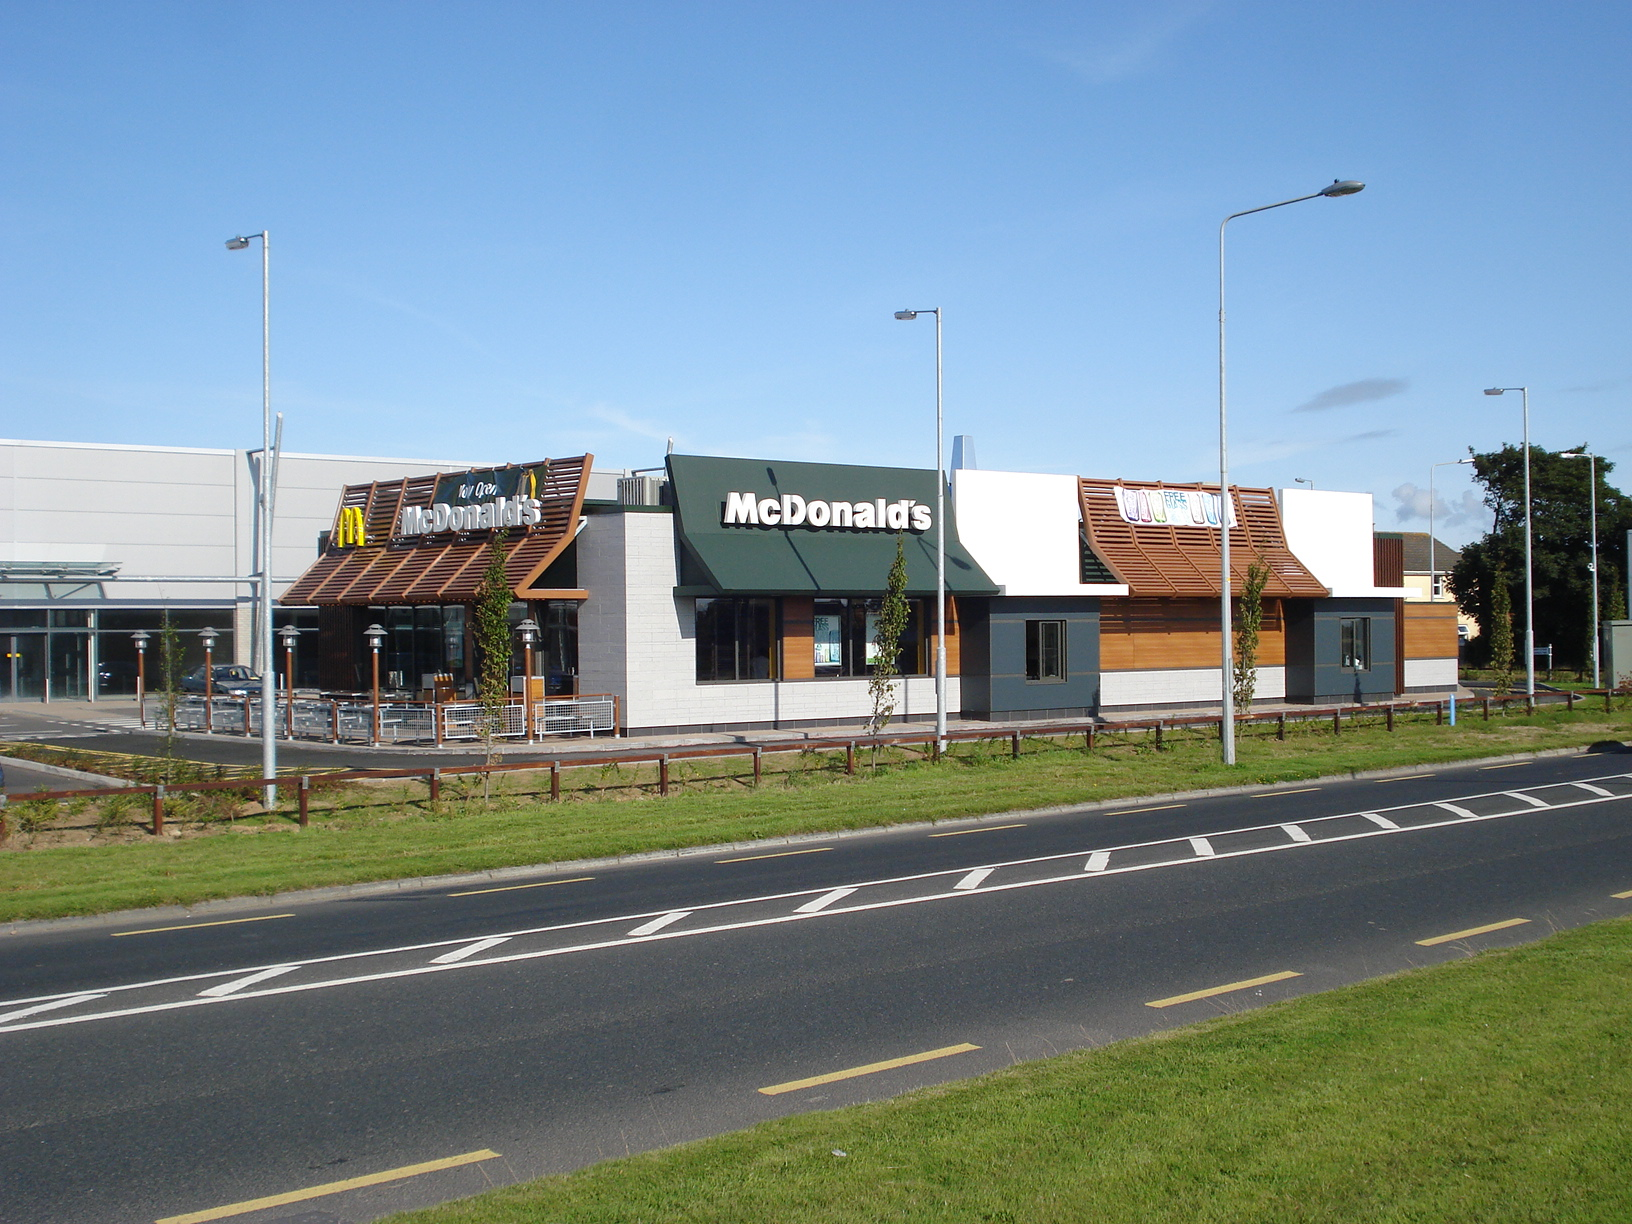 The view of McDonalds from the main road